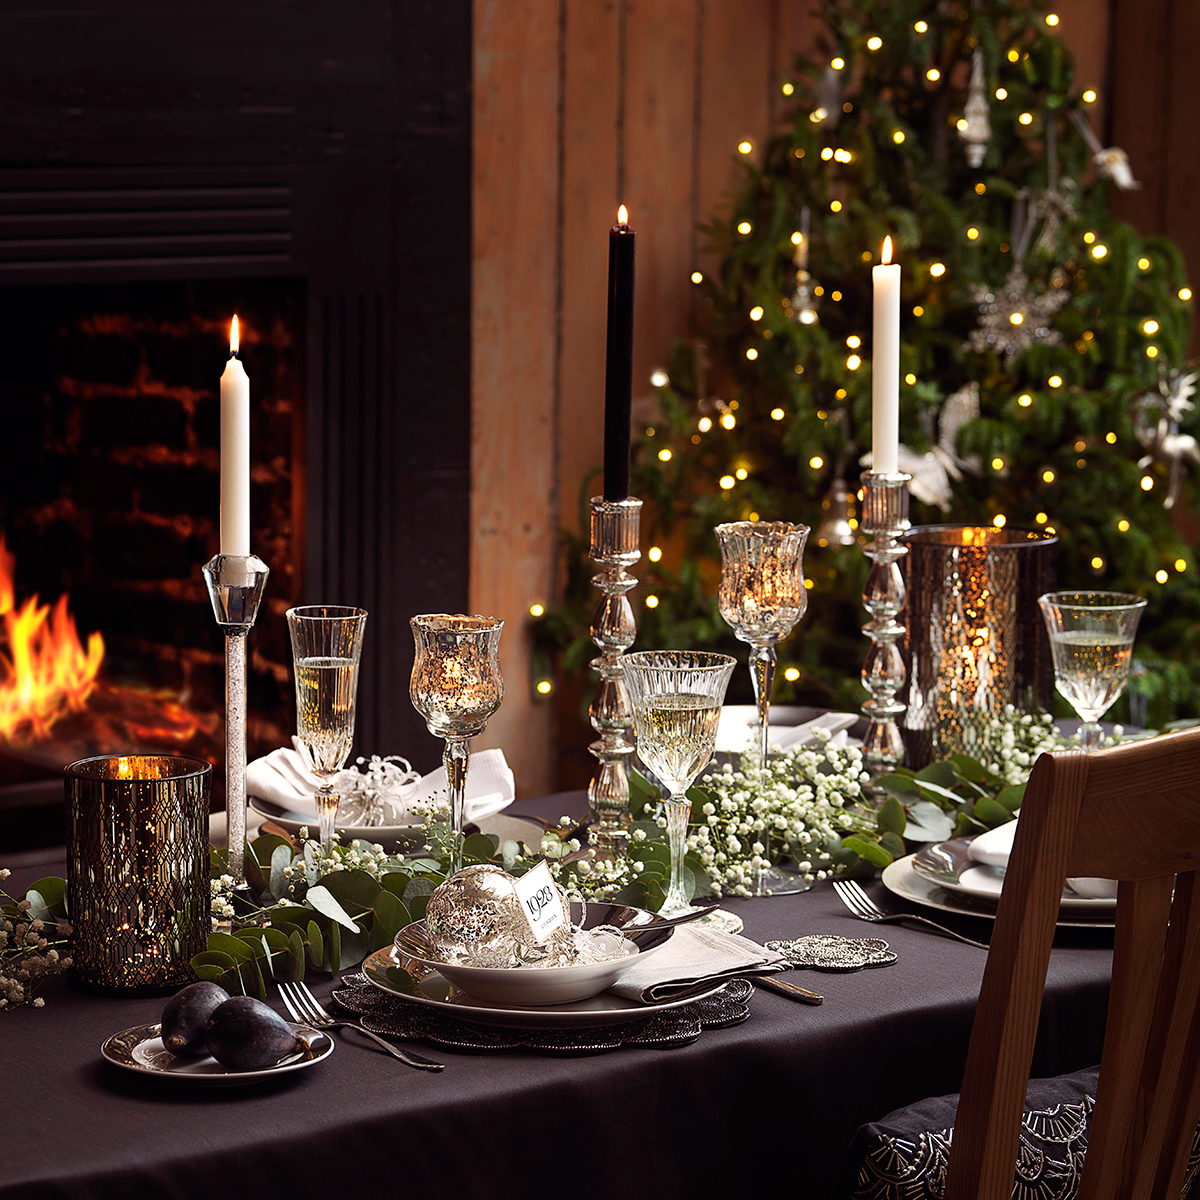 Christmas table decoration ideas for festive dining for Christmas decorations for the dinner table